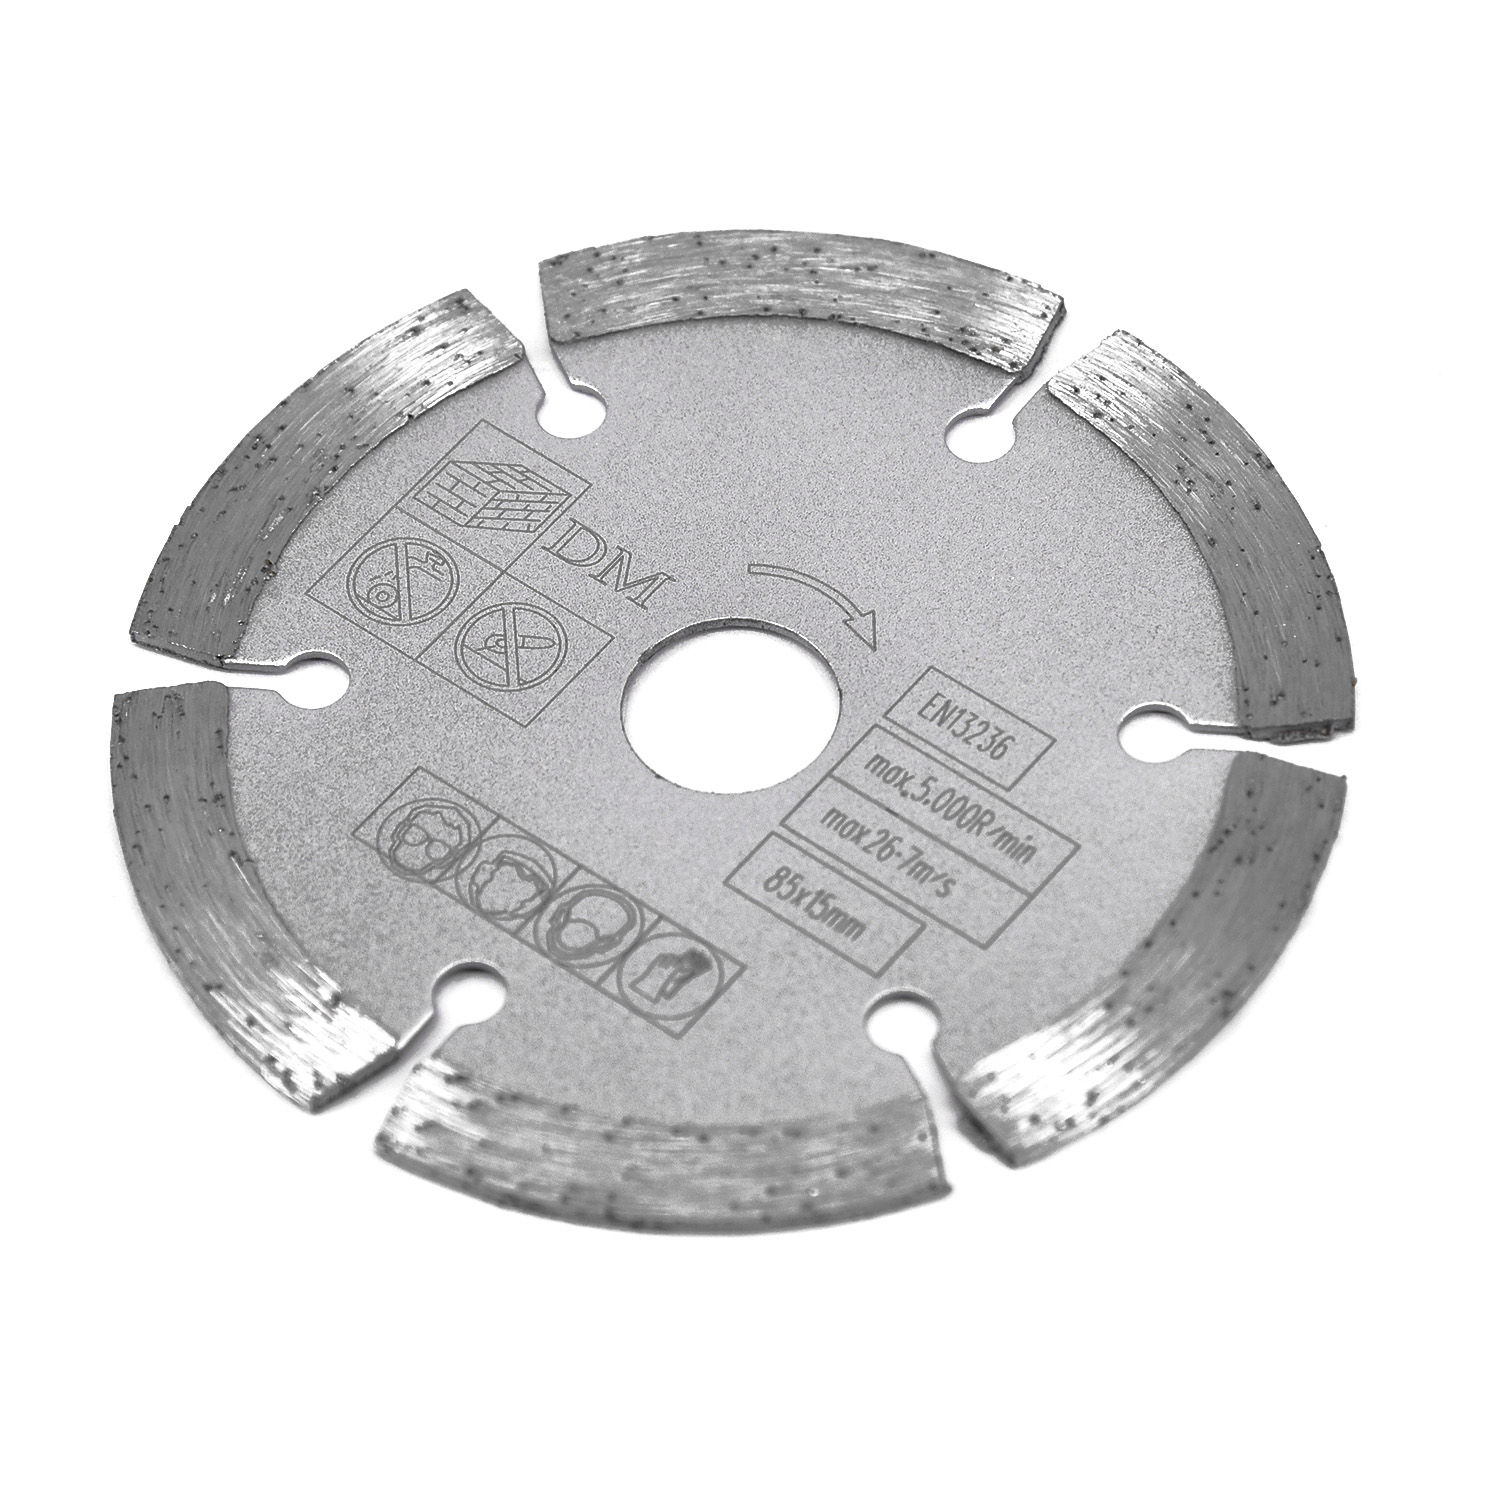 1pc 15mm Bore Diamond Metal Cutting Disc Circular Saw Blade 85mm Wood Cuter For Bosch Makita For Wood Carving Disc